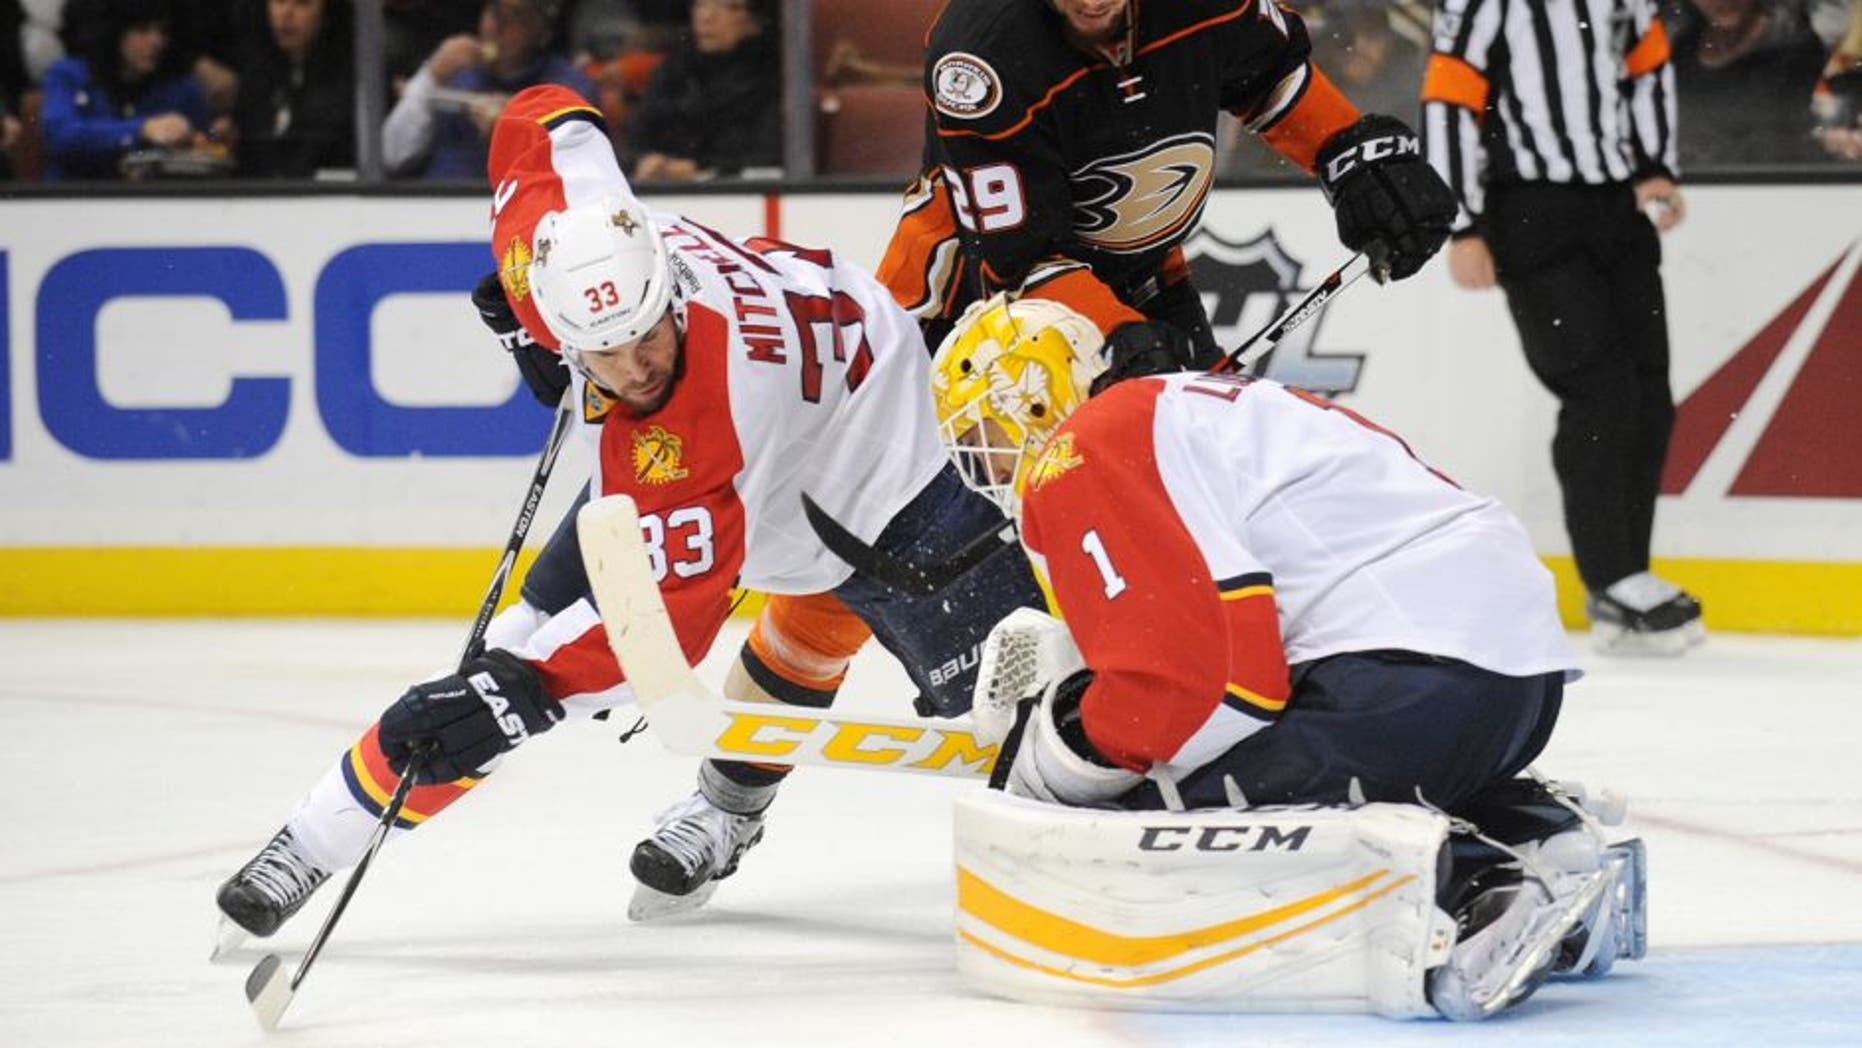 November 4, 2015; Anaheim, CA, USA; Florida Panthers defenseman Willie Mitchell (33) helps goalie Roberto Luongo (1) defend the goal against Anaheim Ducks right wing Chris Stewart (29) during the second period at Honda Center. Mandatory Credit: Gary A. Vasquez-USA TODAY Sports